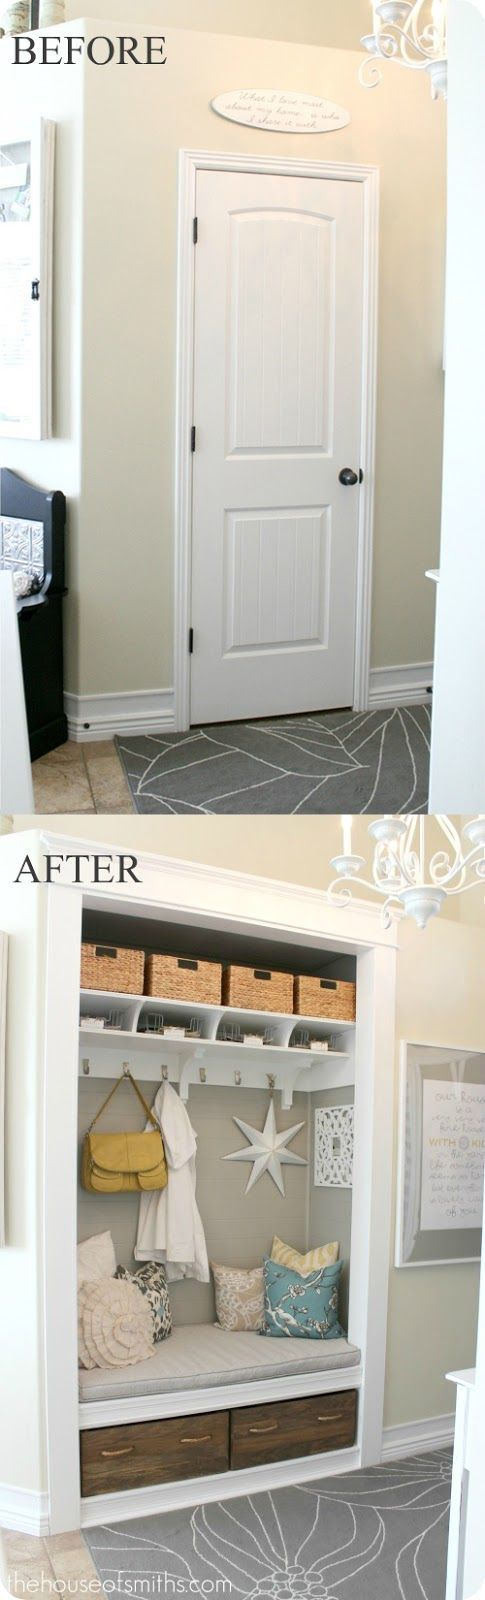 Entryway Elements that Rock! Our entryway Nook Before and After - House of Smiths